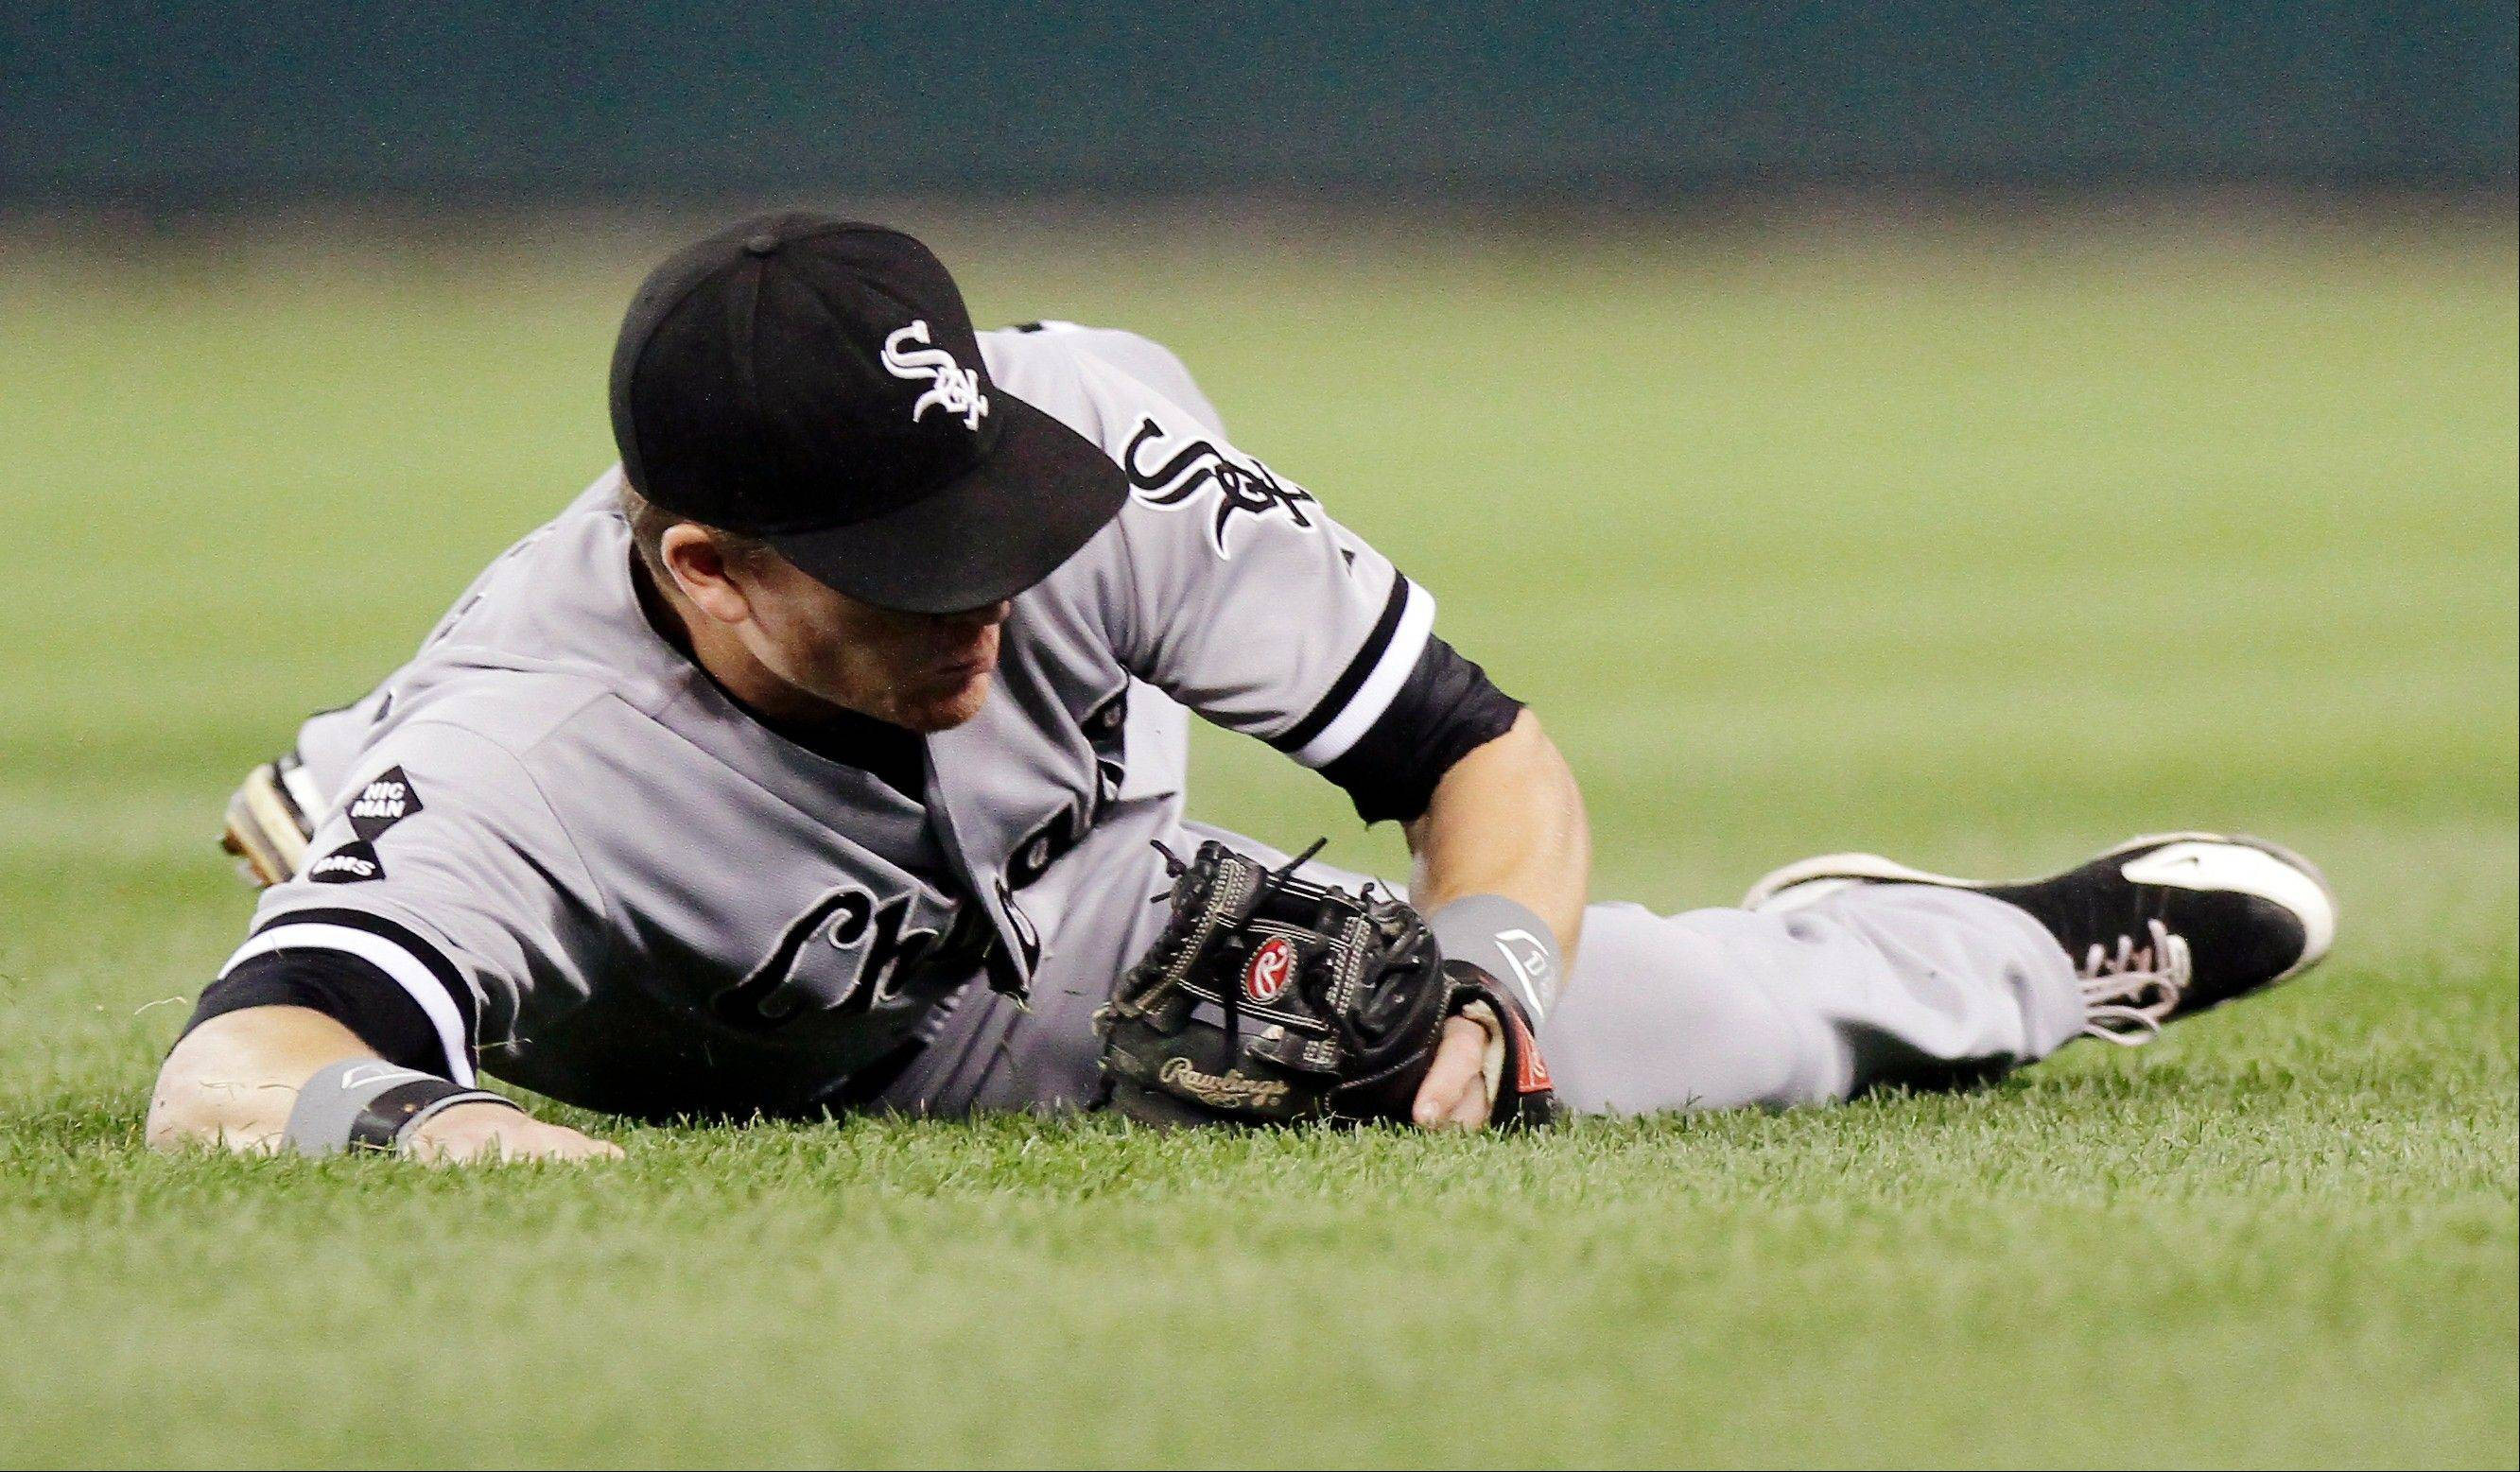 White Sox second baseman Gordon Beckham smothers a ground ball hit by Detroit Tigers� Prince Fielder to throw him out at first base in the sixth inning of a baseball game Saturday in Detroit.